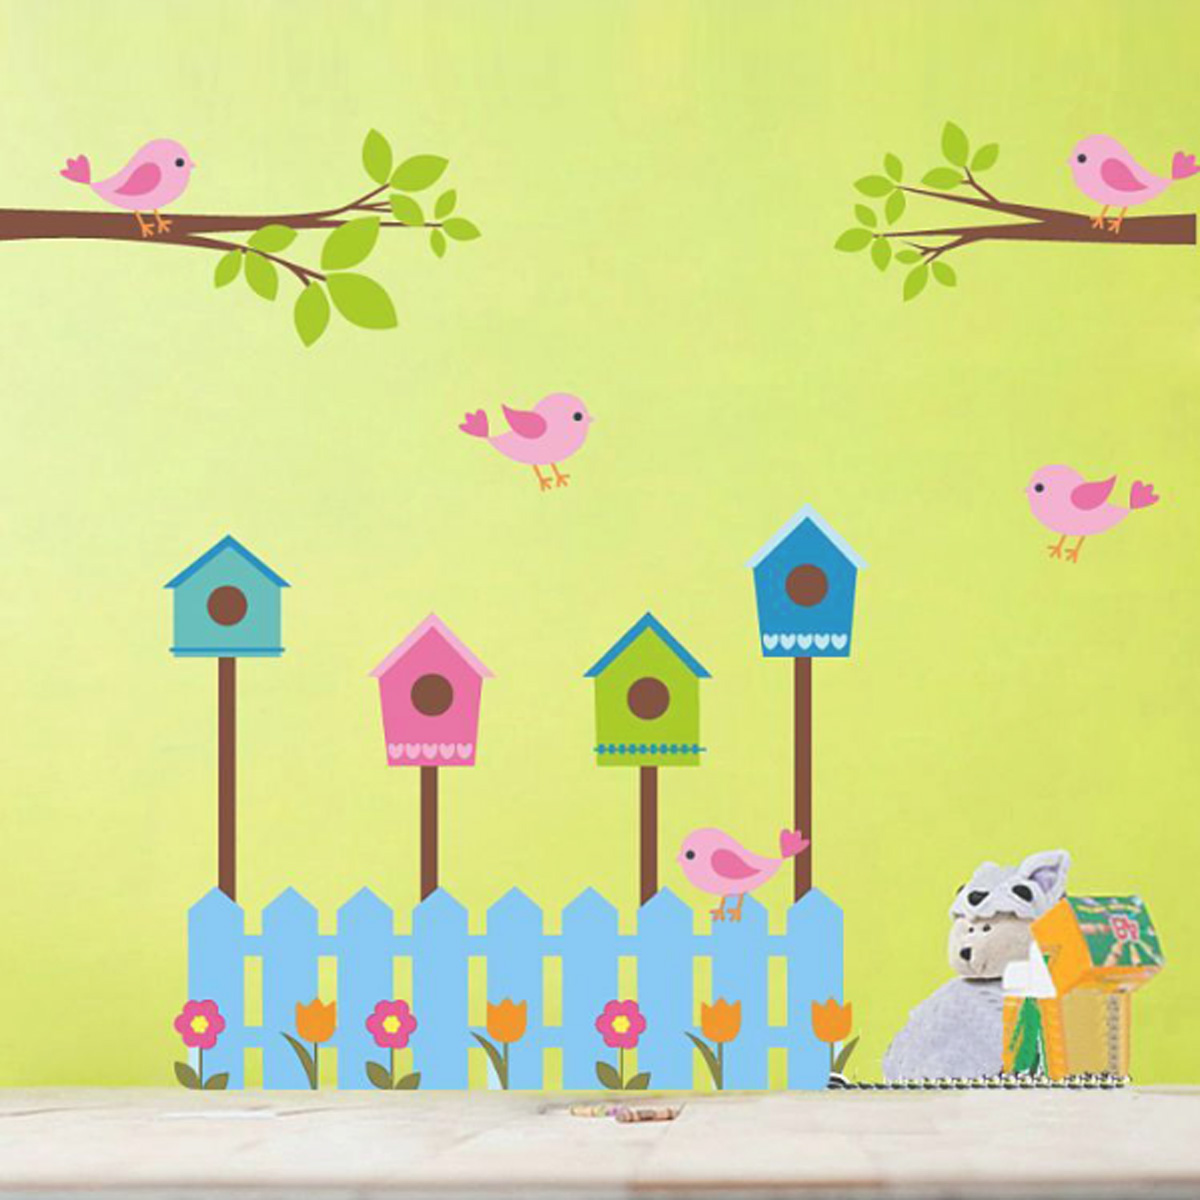 DIY Removable Decal Home Room Decor Birdcage Wall Stickers & Murals Tree Flower Wall Sticker Wallpaper